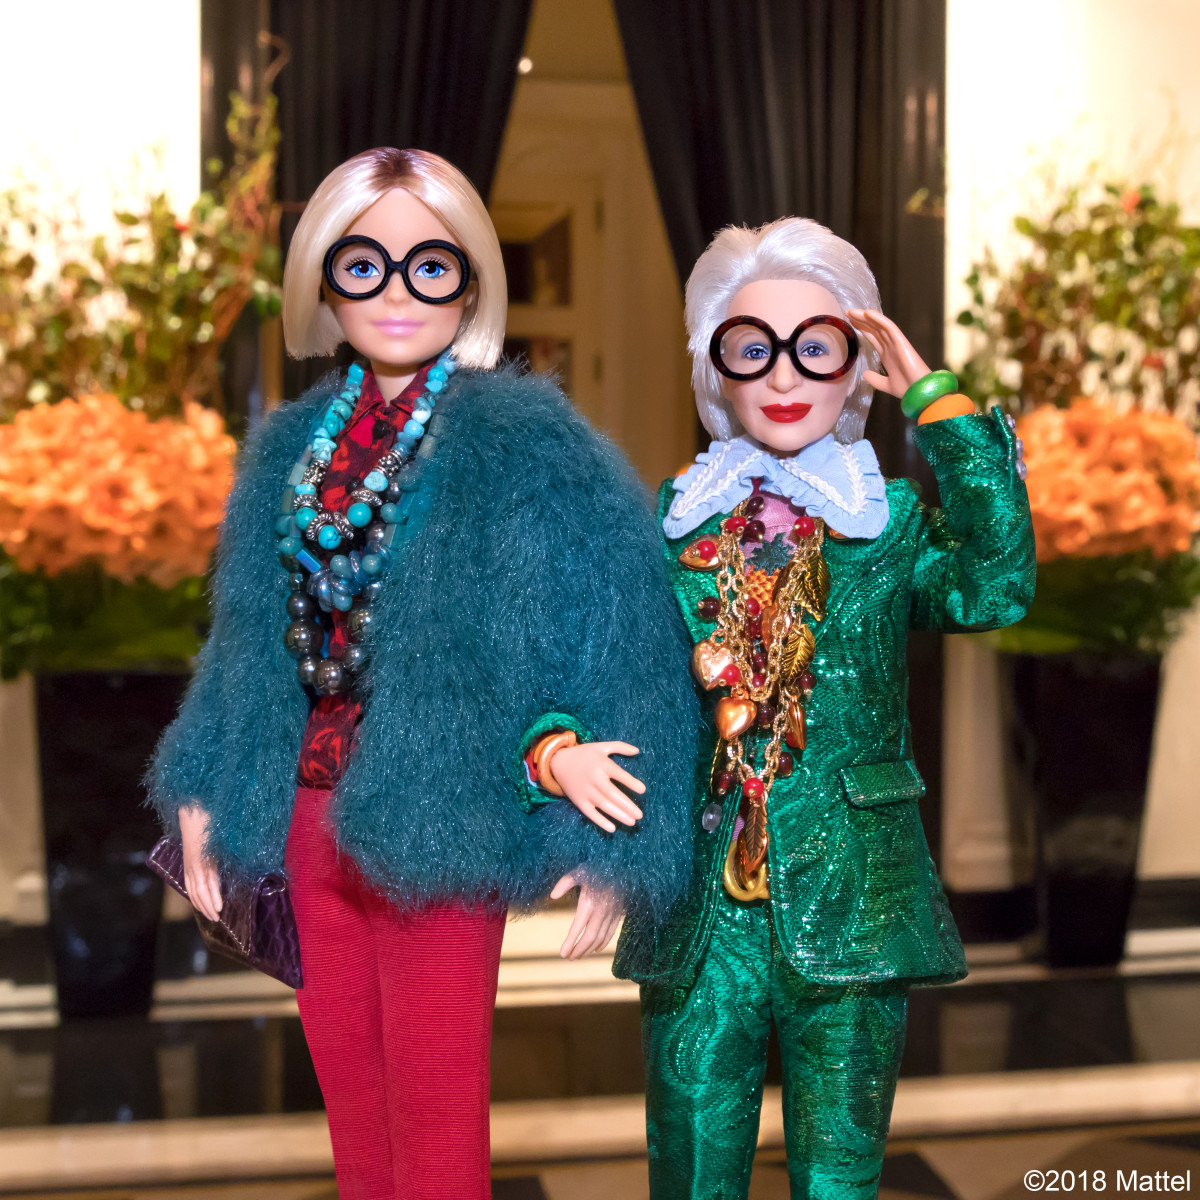 News on Fashion - Eniwhere Fashion - Iris Apfel x Barbie